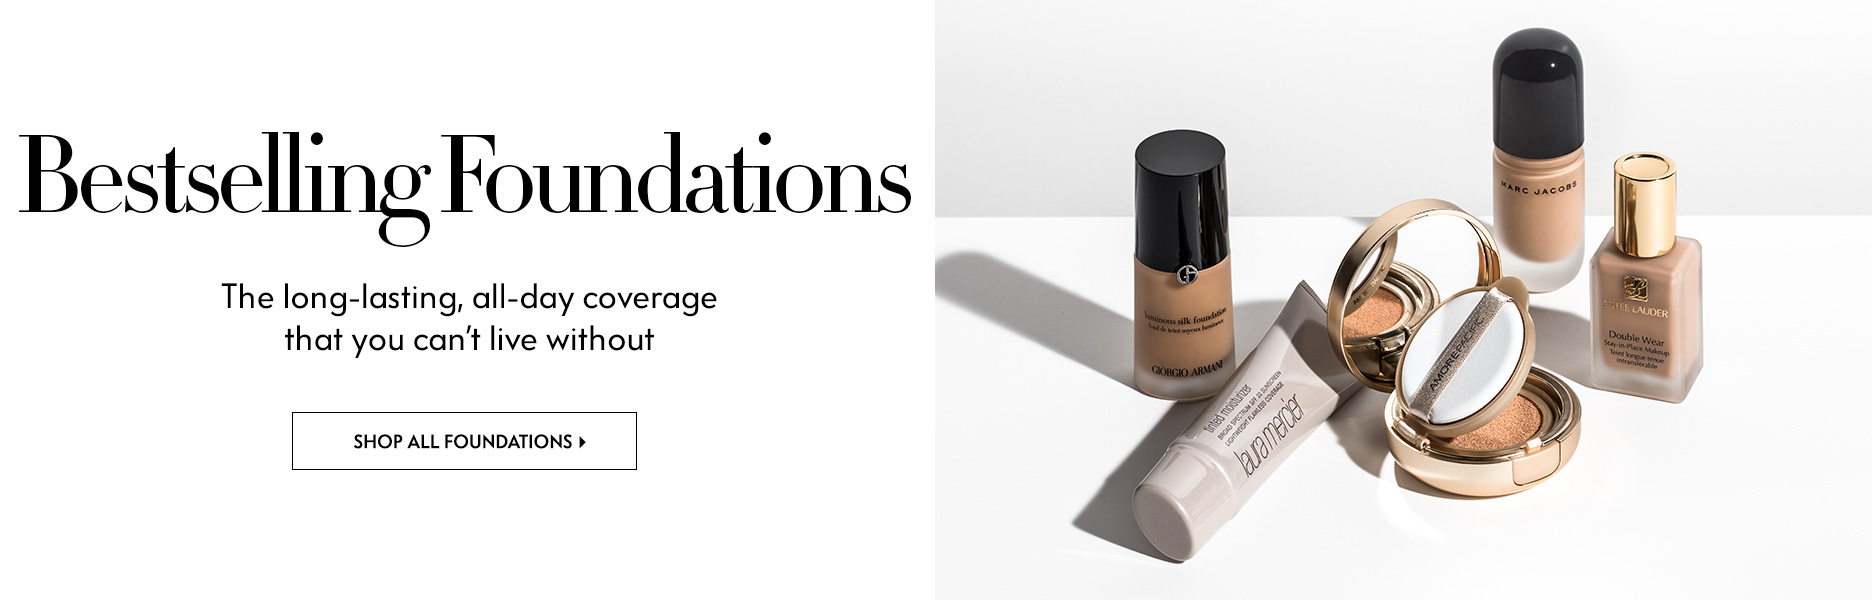 Foundations - The long-lasting, all-day coverage that you can't live without